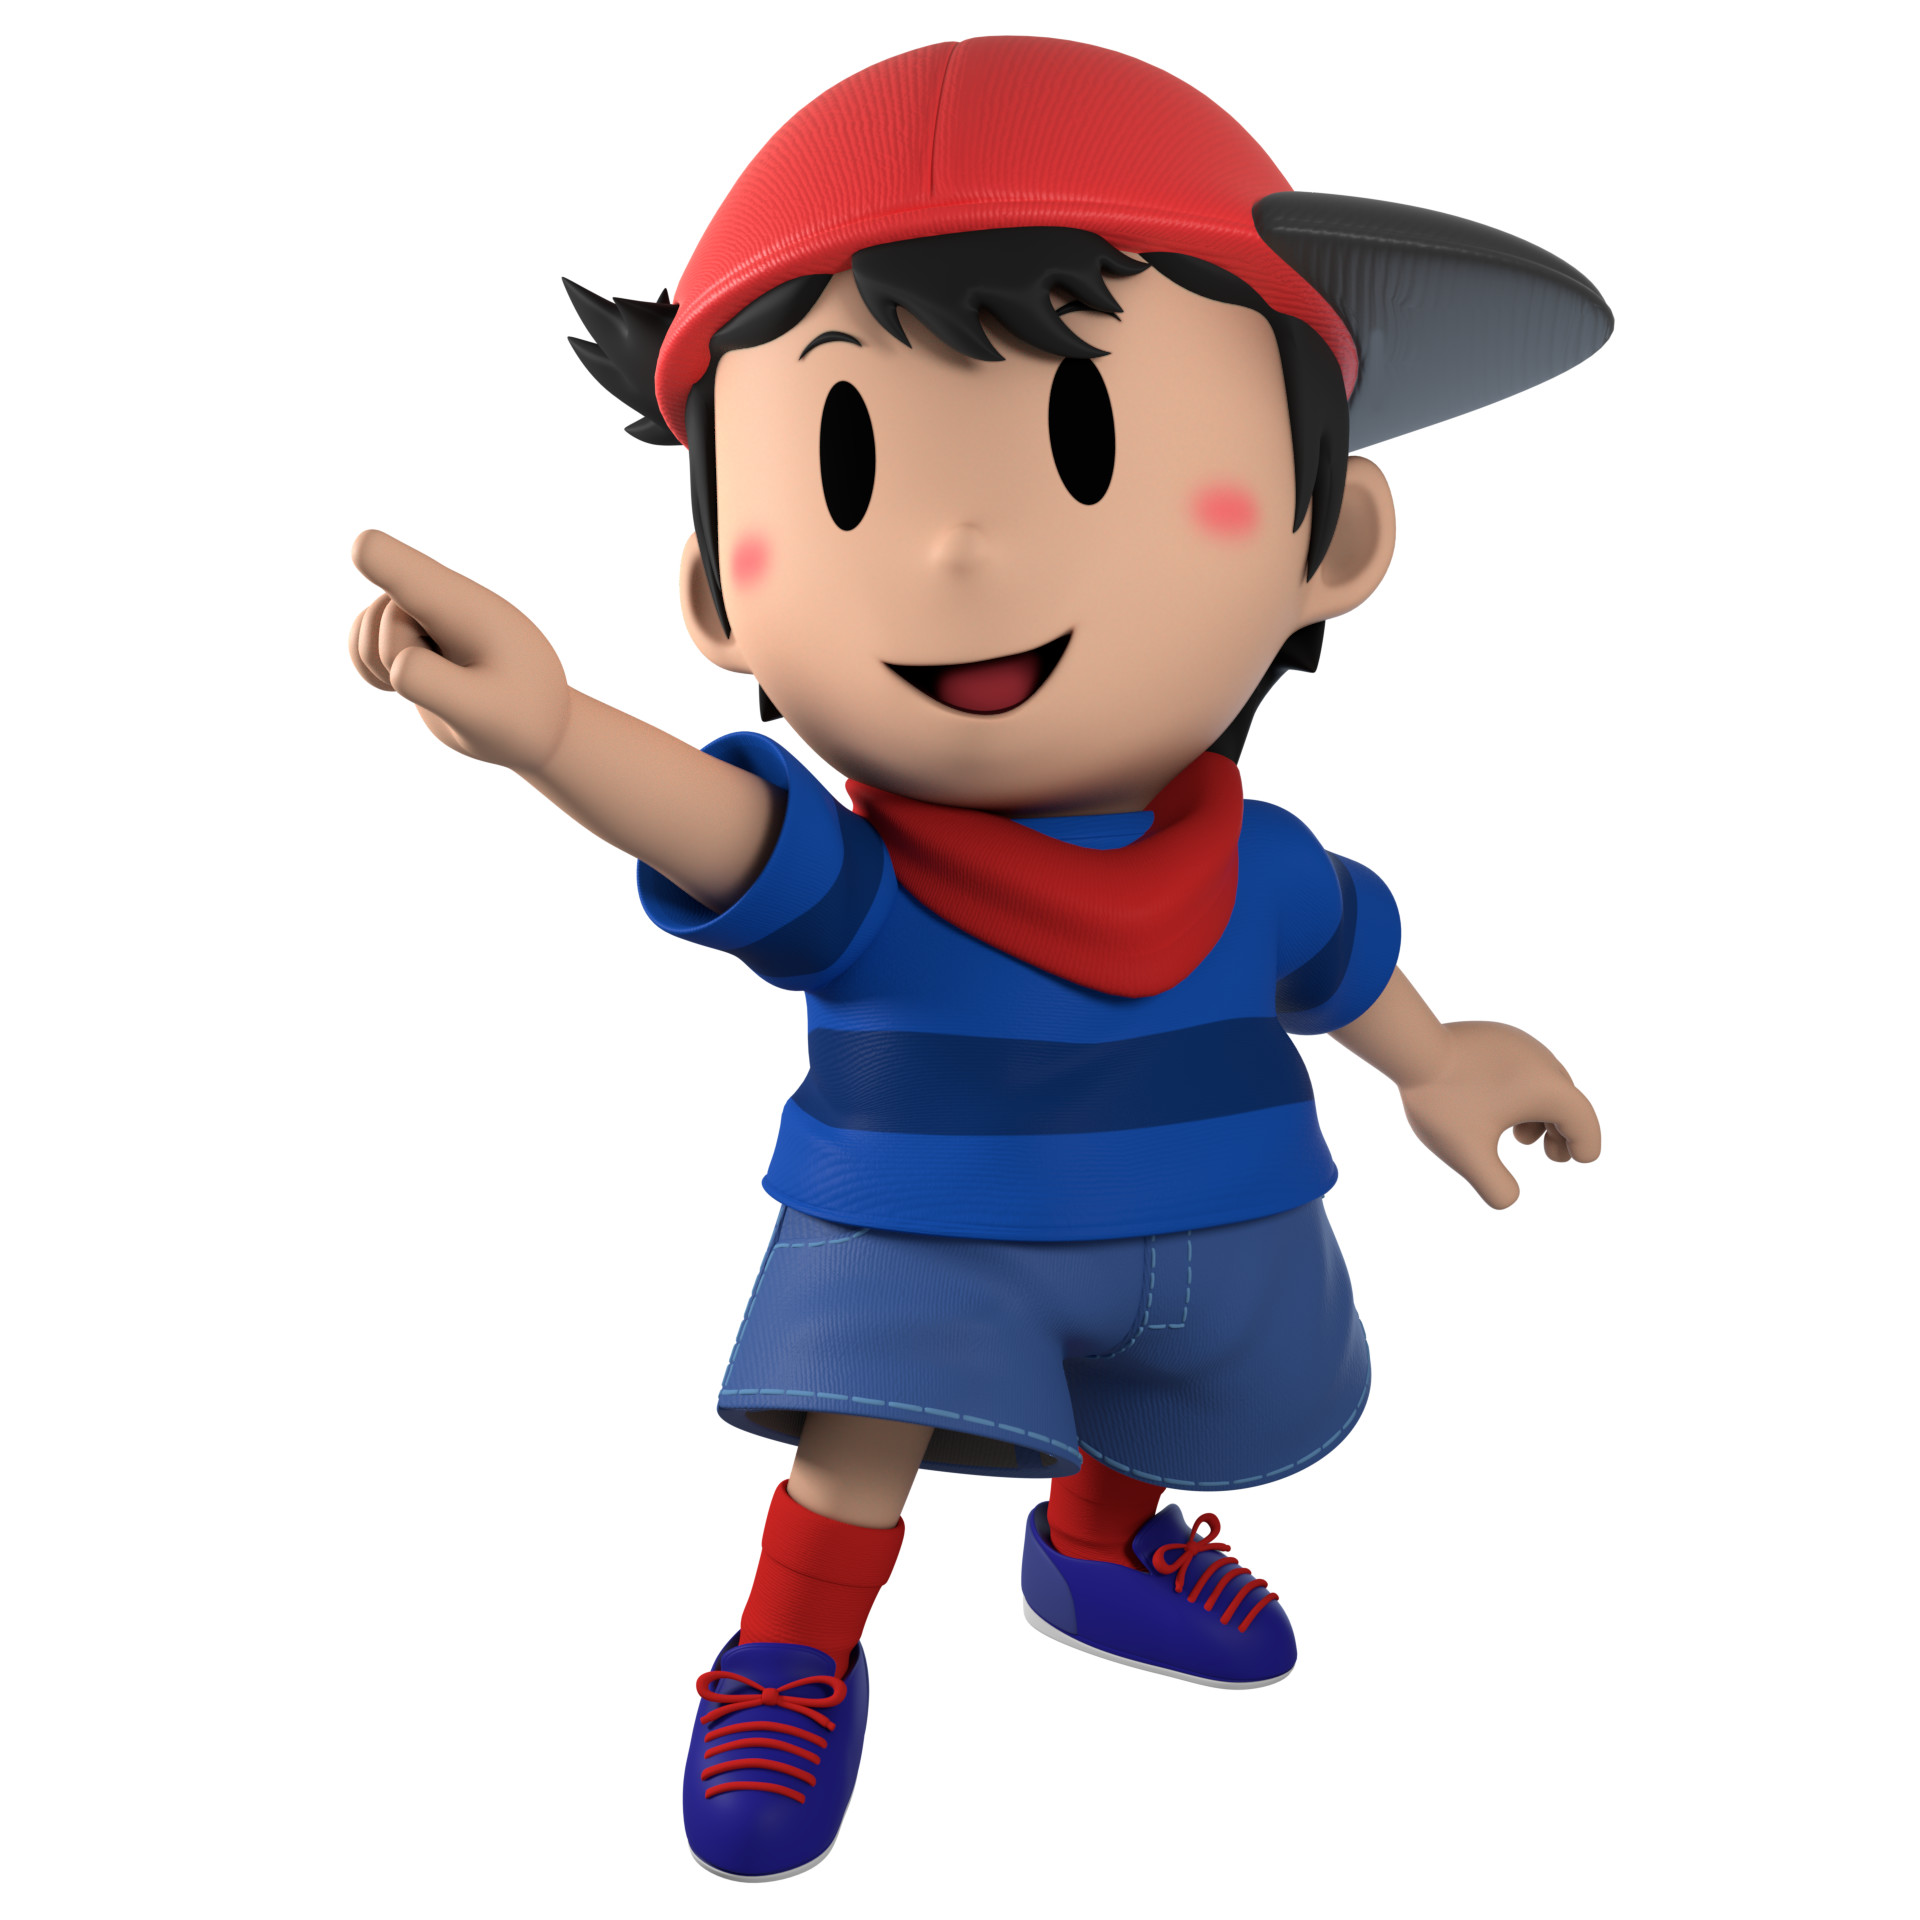 Noah Hayden - Ninten - Mother 1/Earthbound Beginnings (Smash